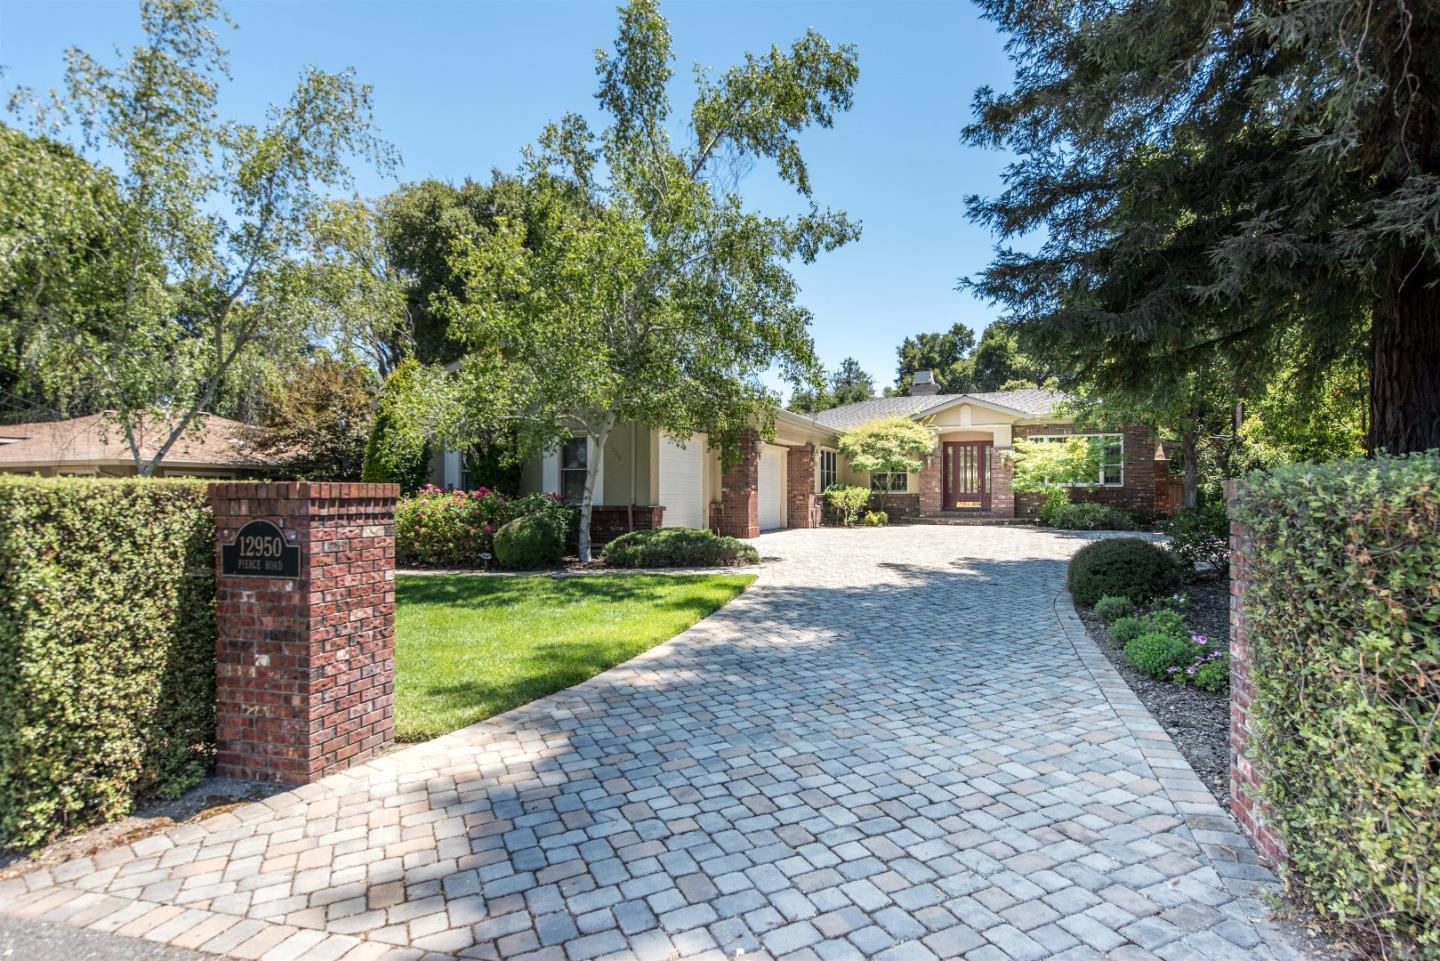 Additional photo for property listing at 12950 PIERCE Road  Saratoga, Californie 95070 États-Unis